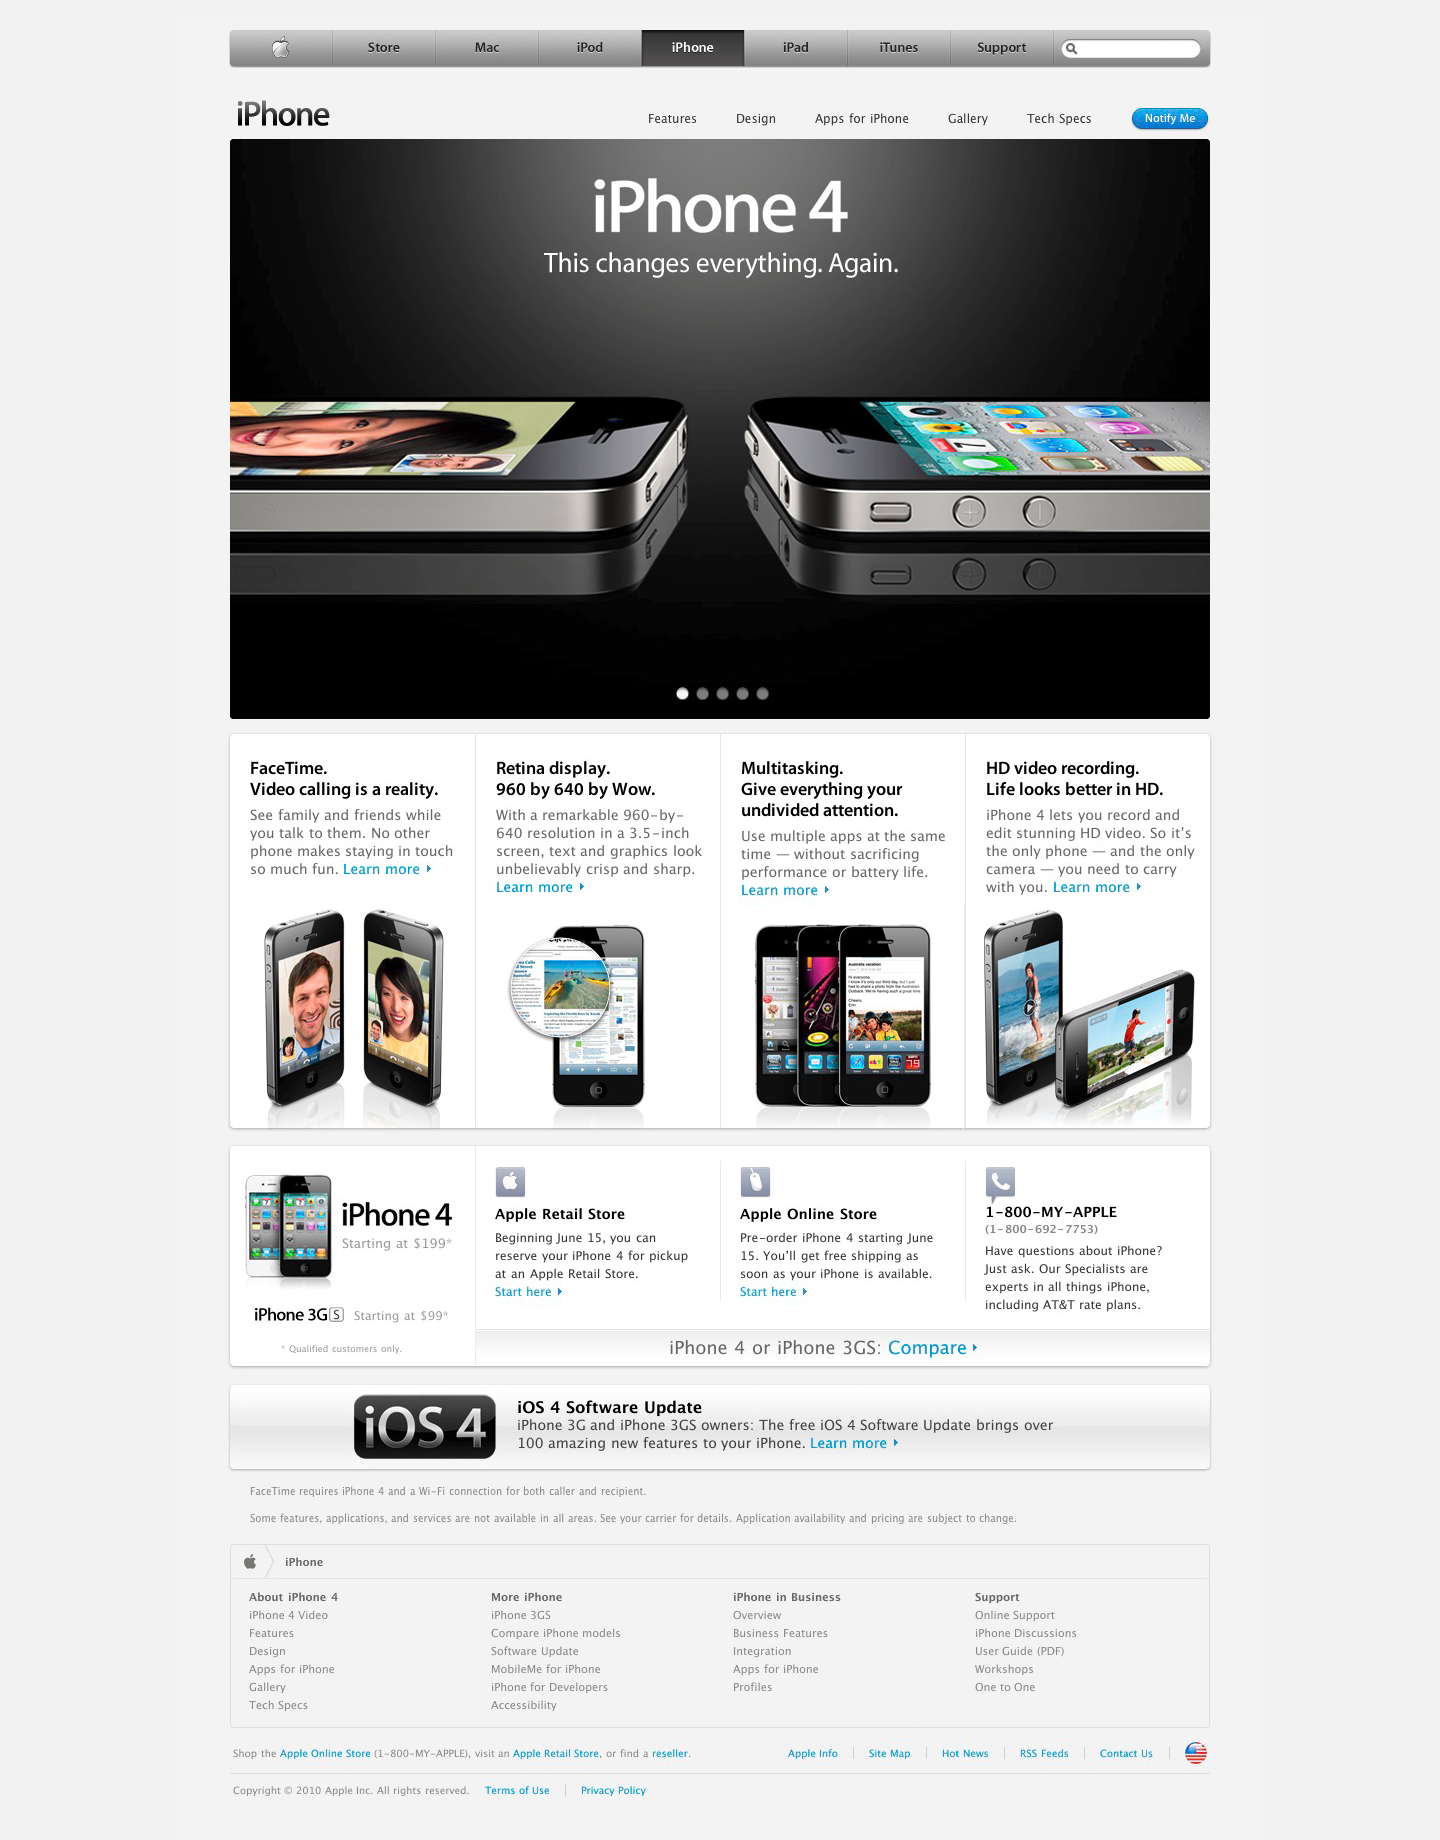 iPhone 4 landing page on Apple.com